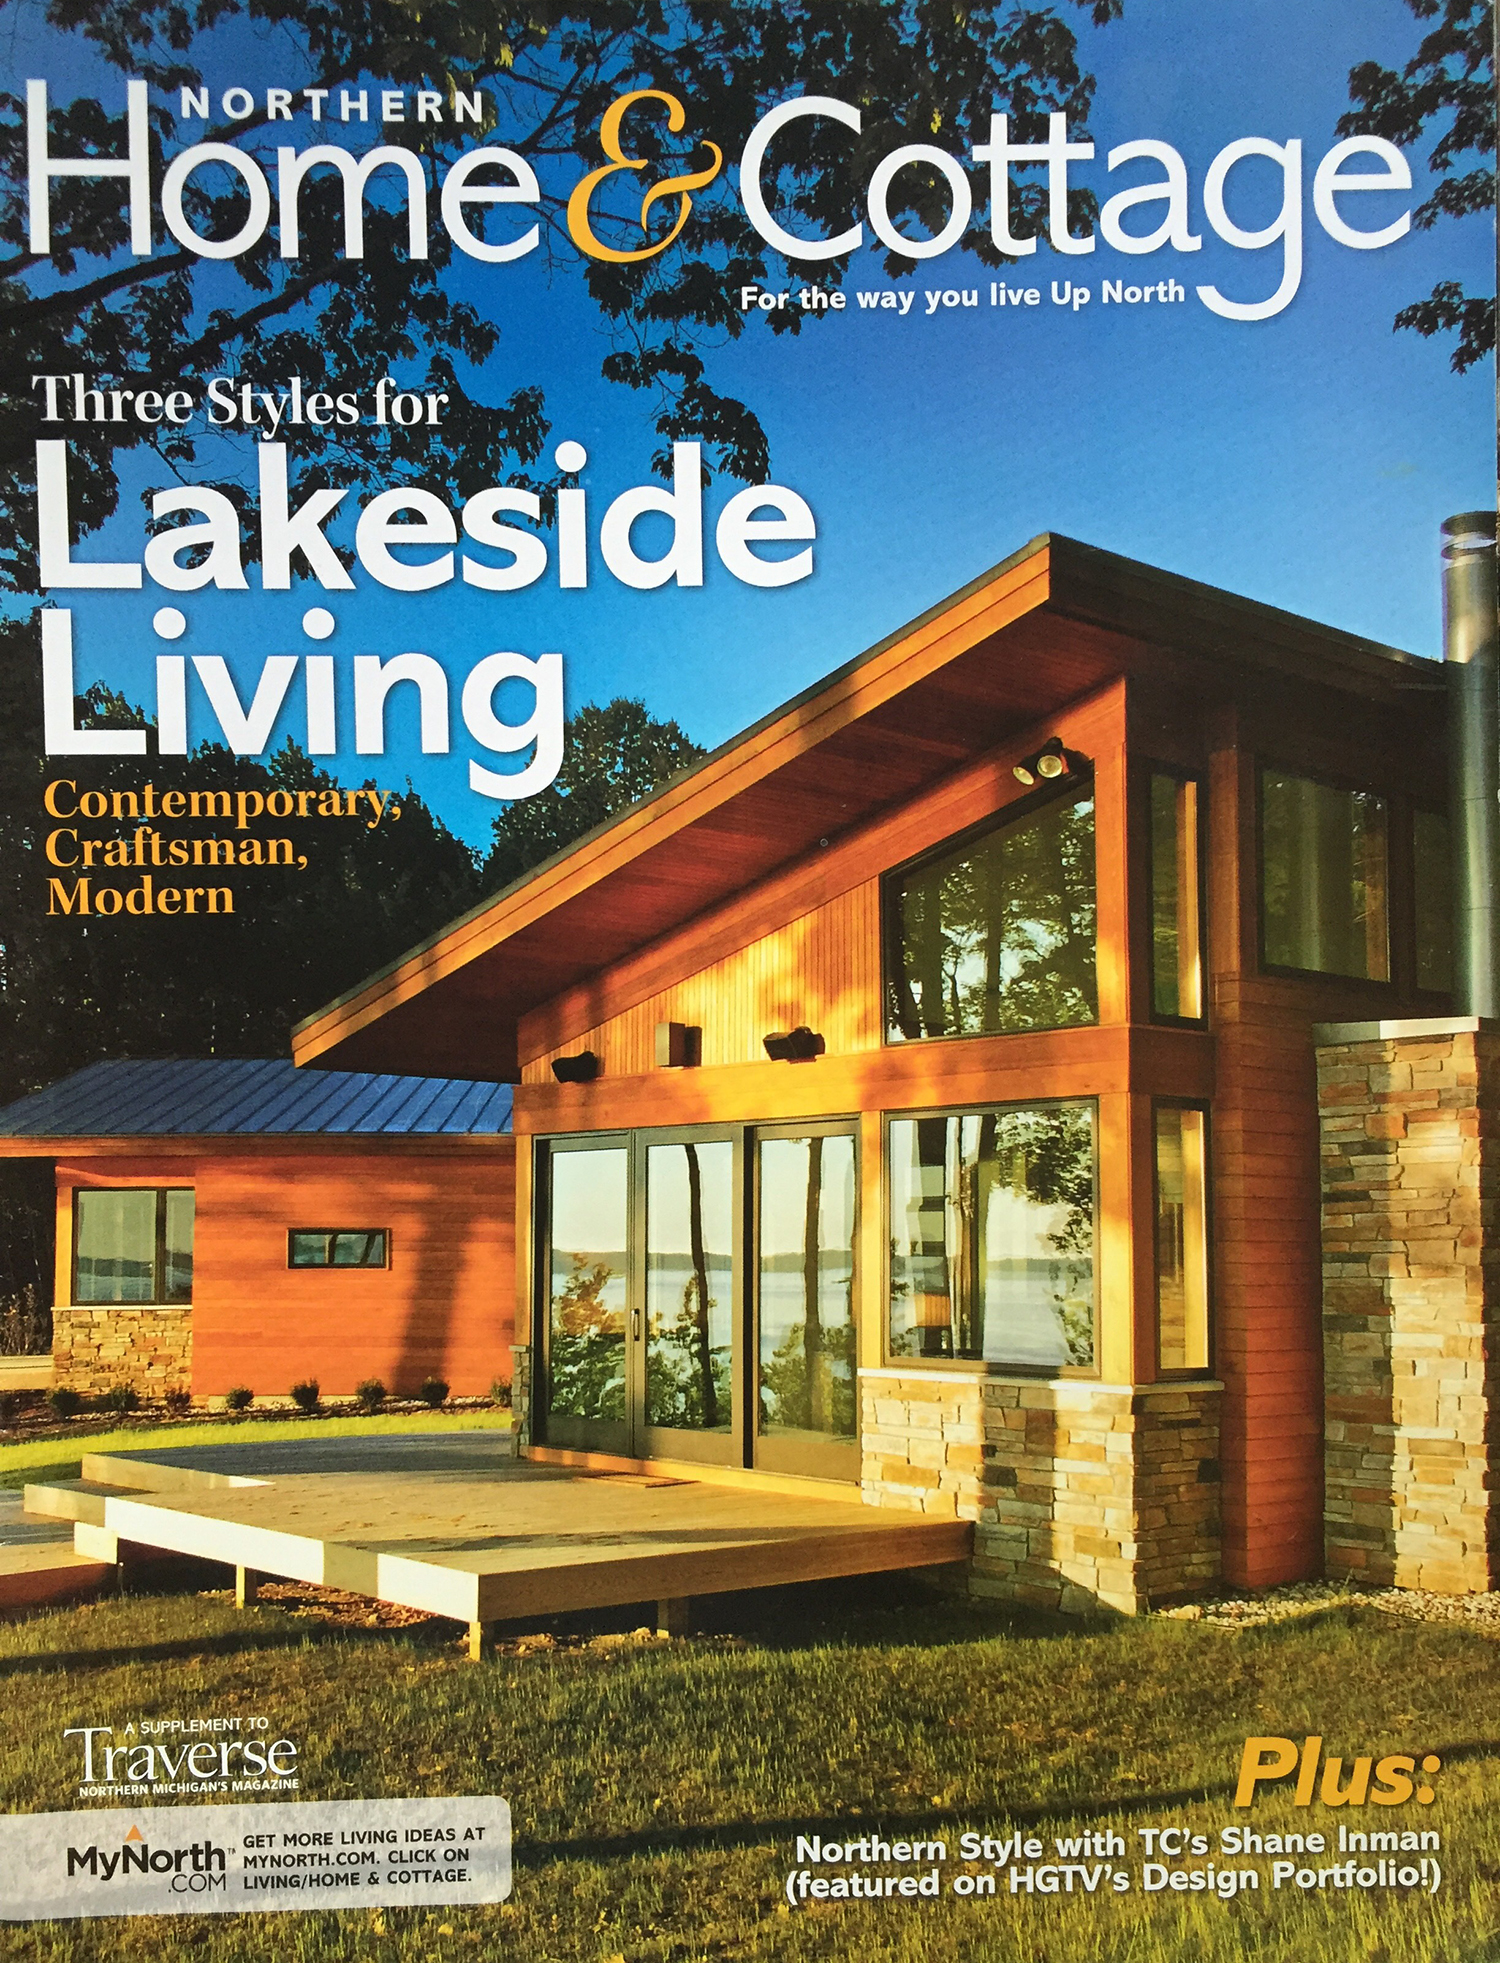 CARLYON RESIDENCE featured in Traverse, The Magazine Home Edition